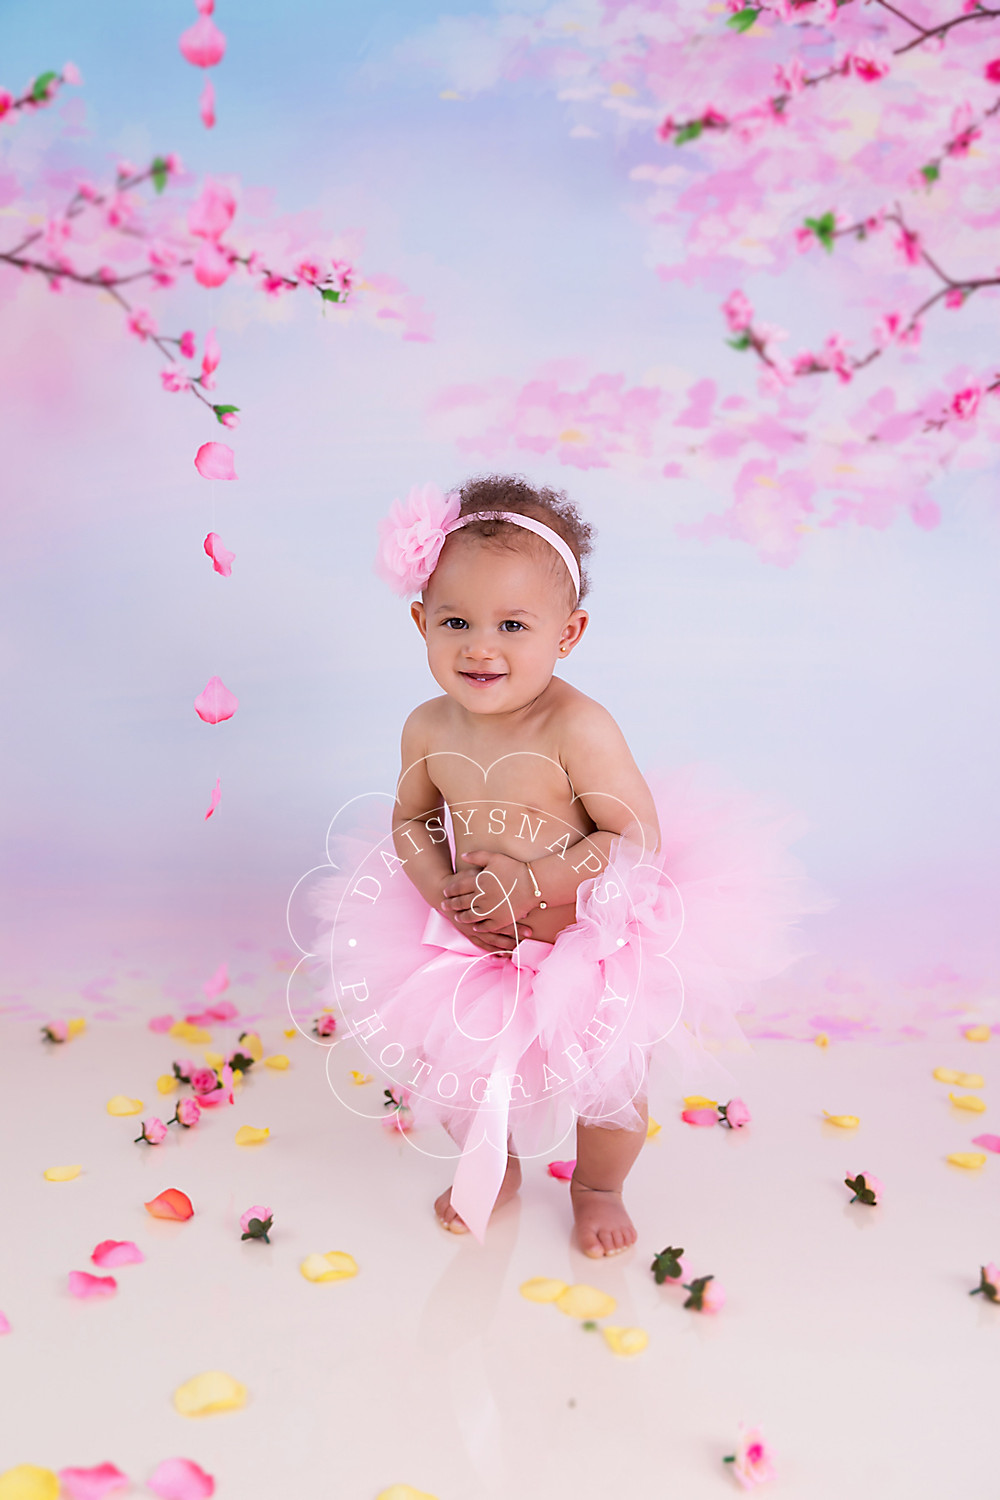 a little girl dancing to the sound of mum and dad singing, the scene is set with a cherry blossom backdrop and roses and petals on the floor for her first birthday photo session